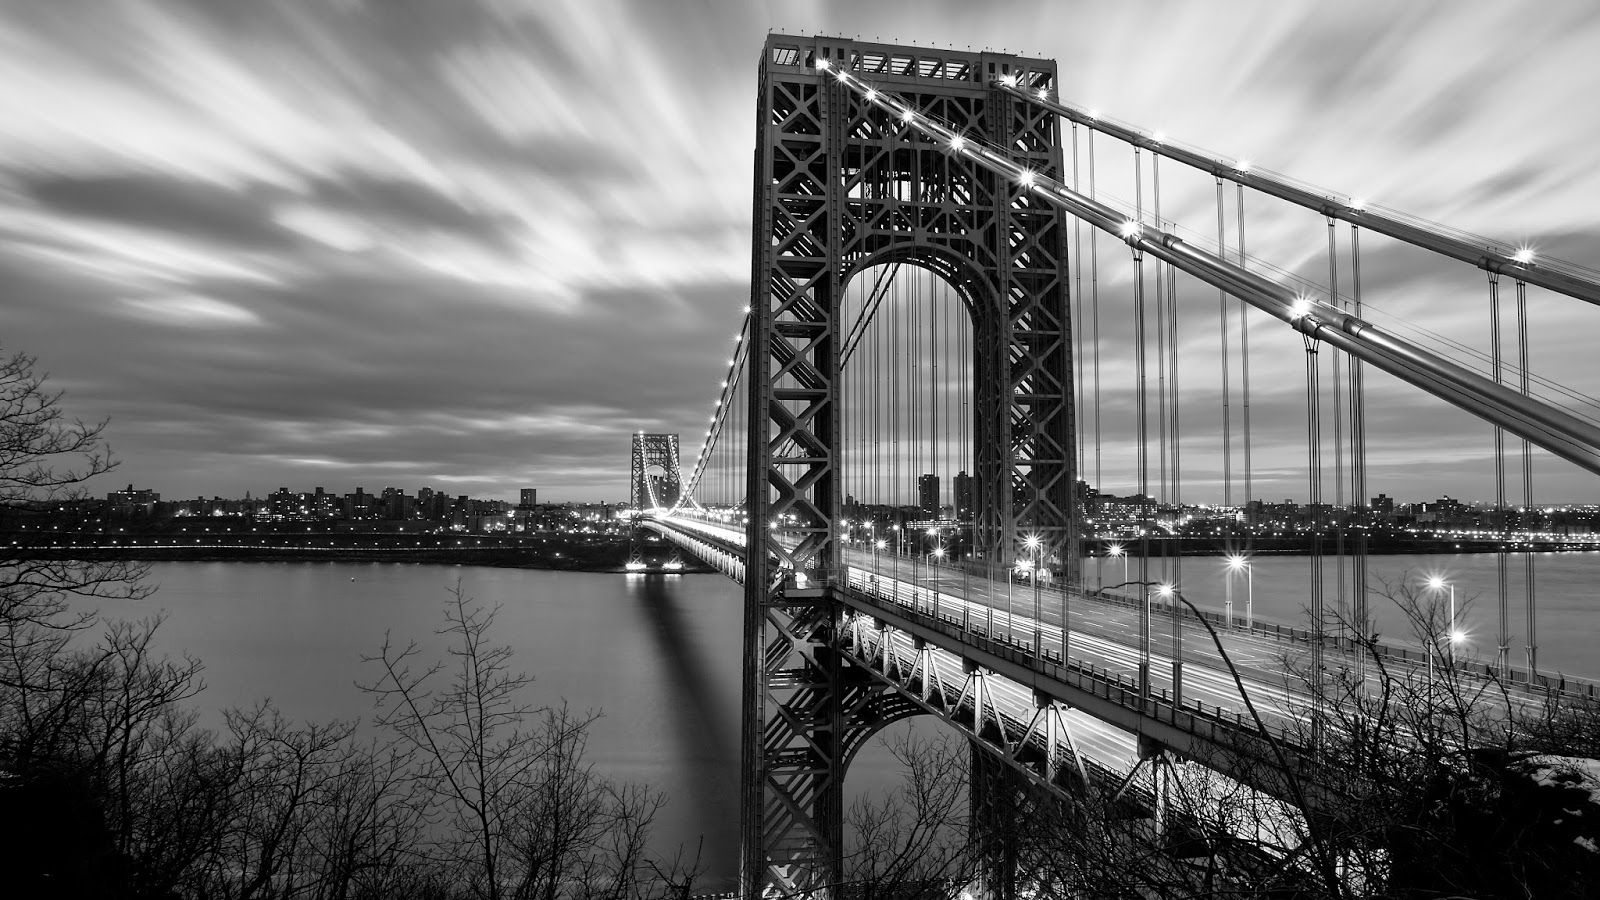 Black And White Hd Wallpapers Beautiful Bridges Wallpaper Bridge Wallpaper Desktop Wallpaper Landscape